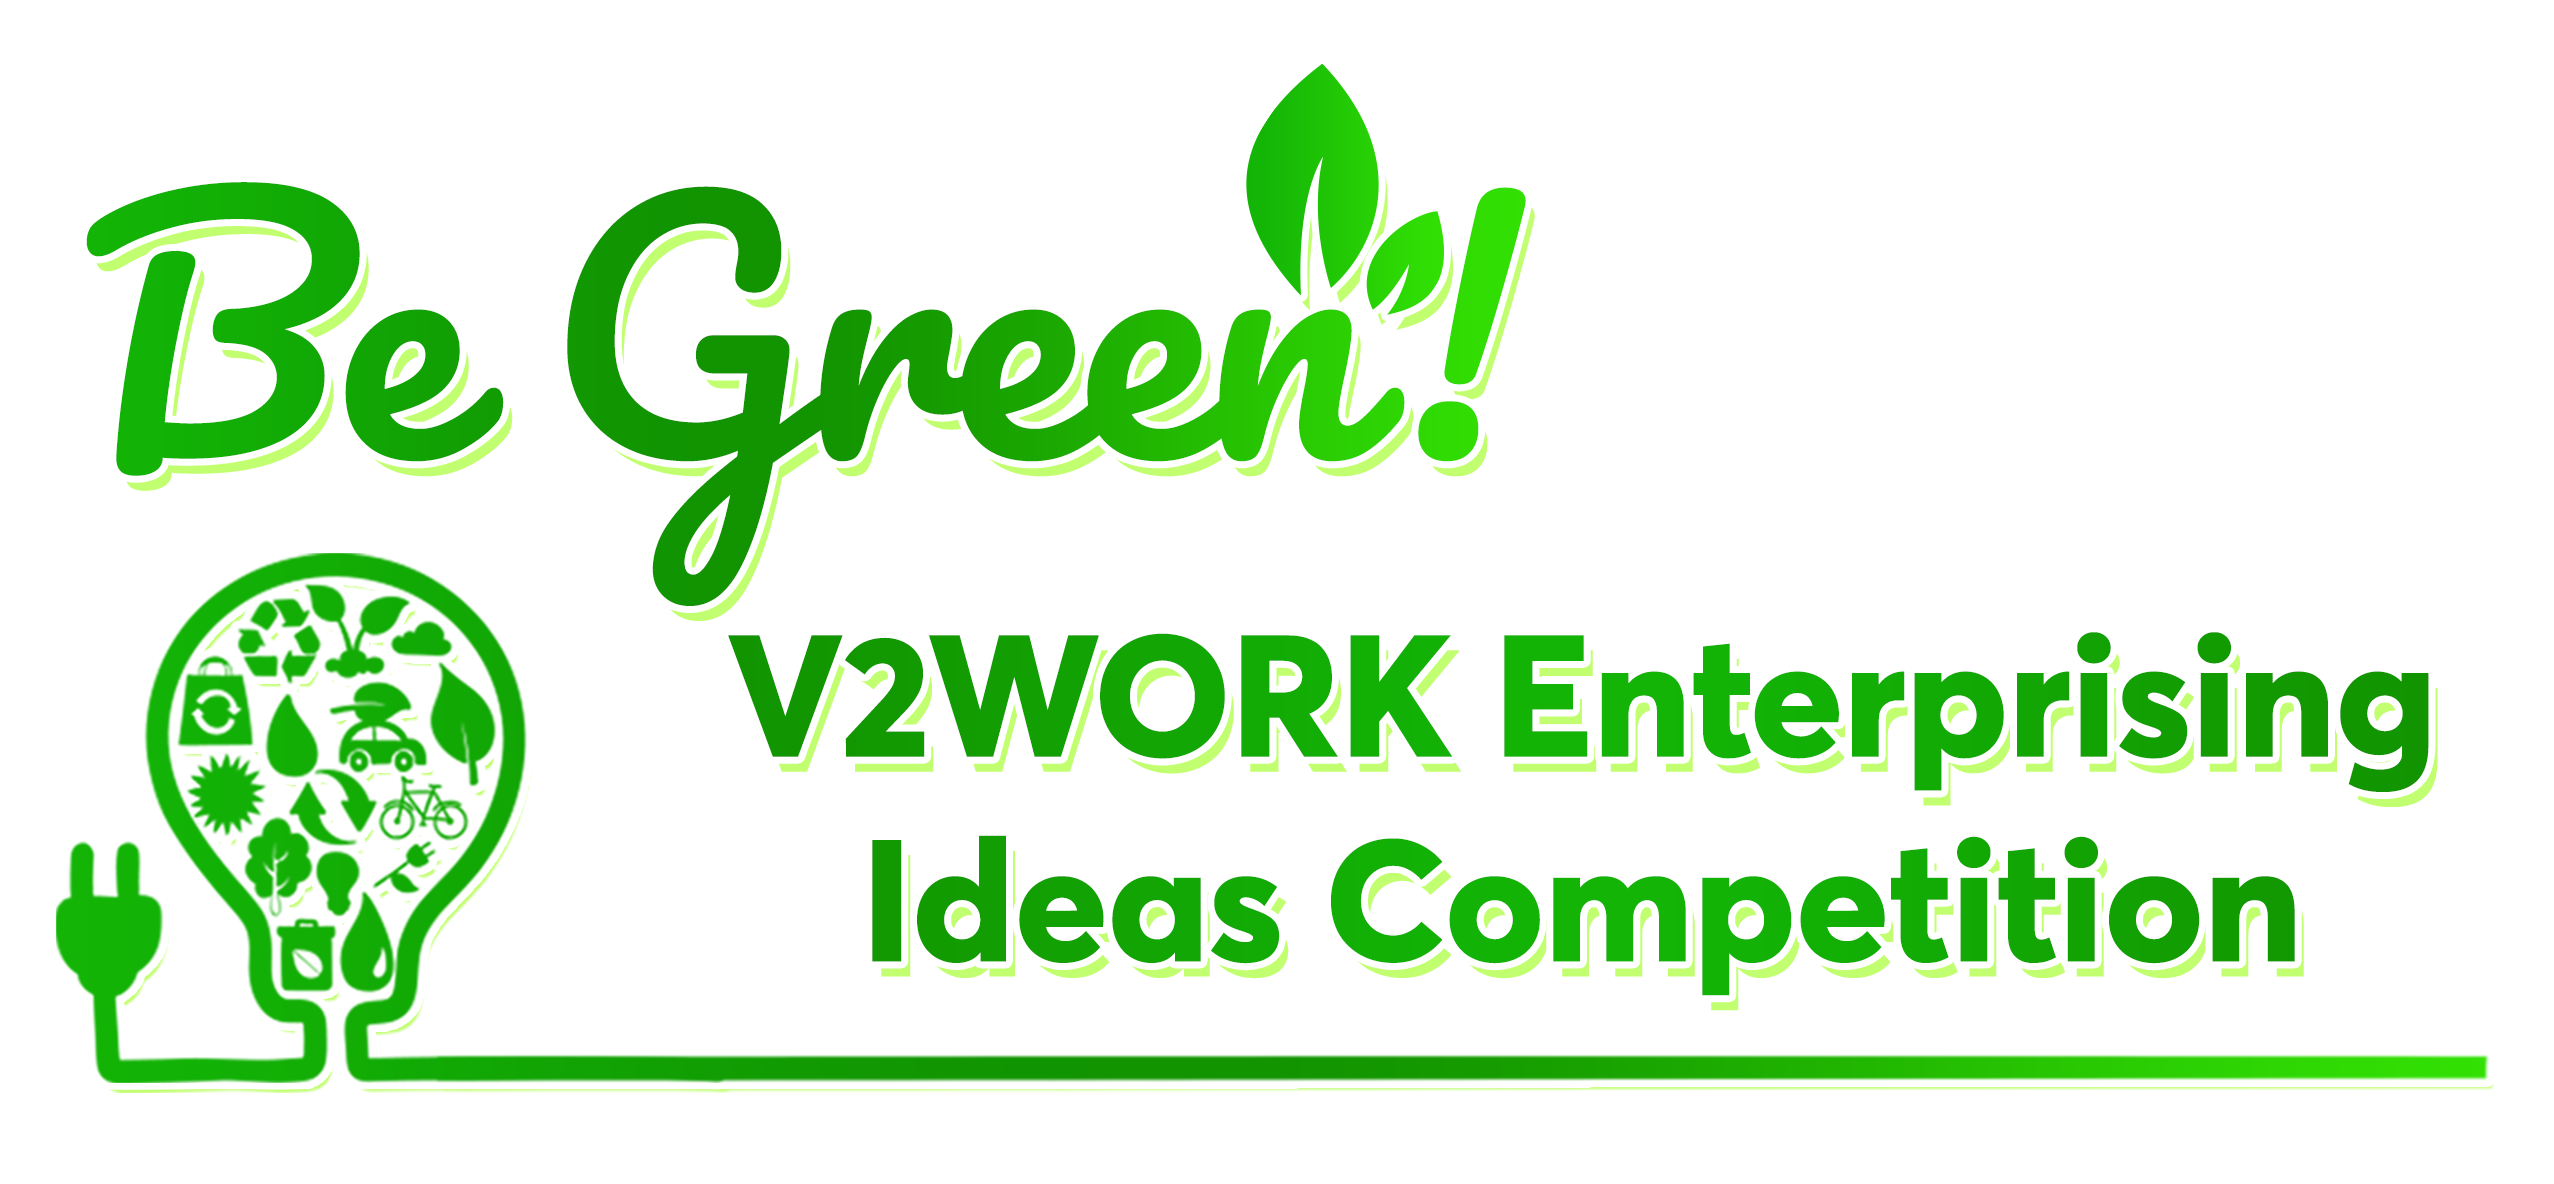 Be Green! V2WORK Enterprising Ideas Competition